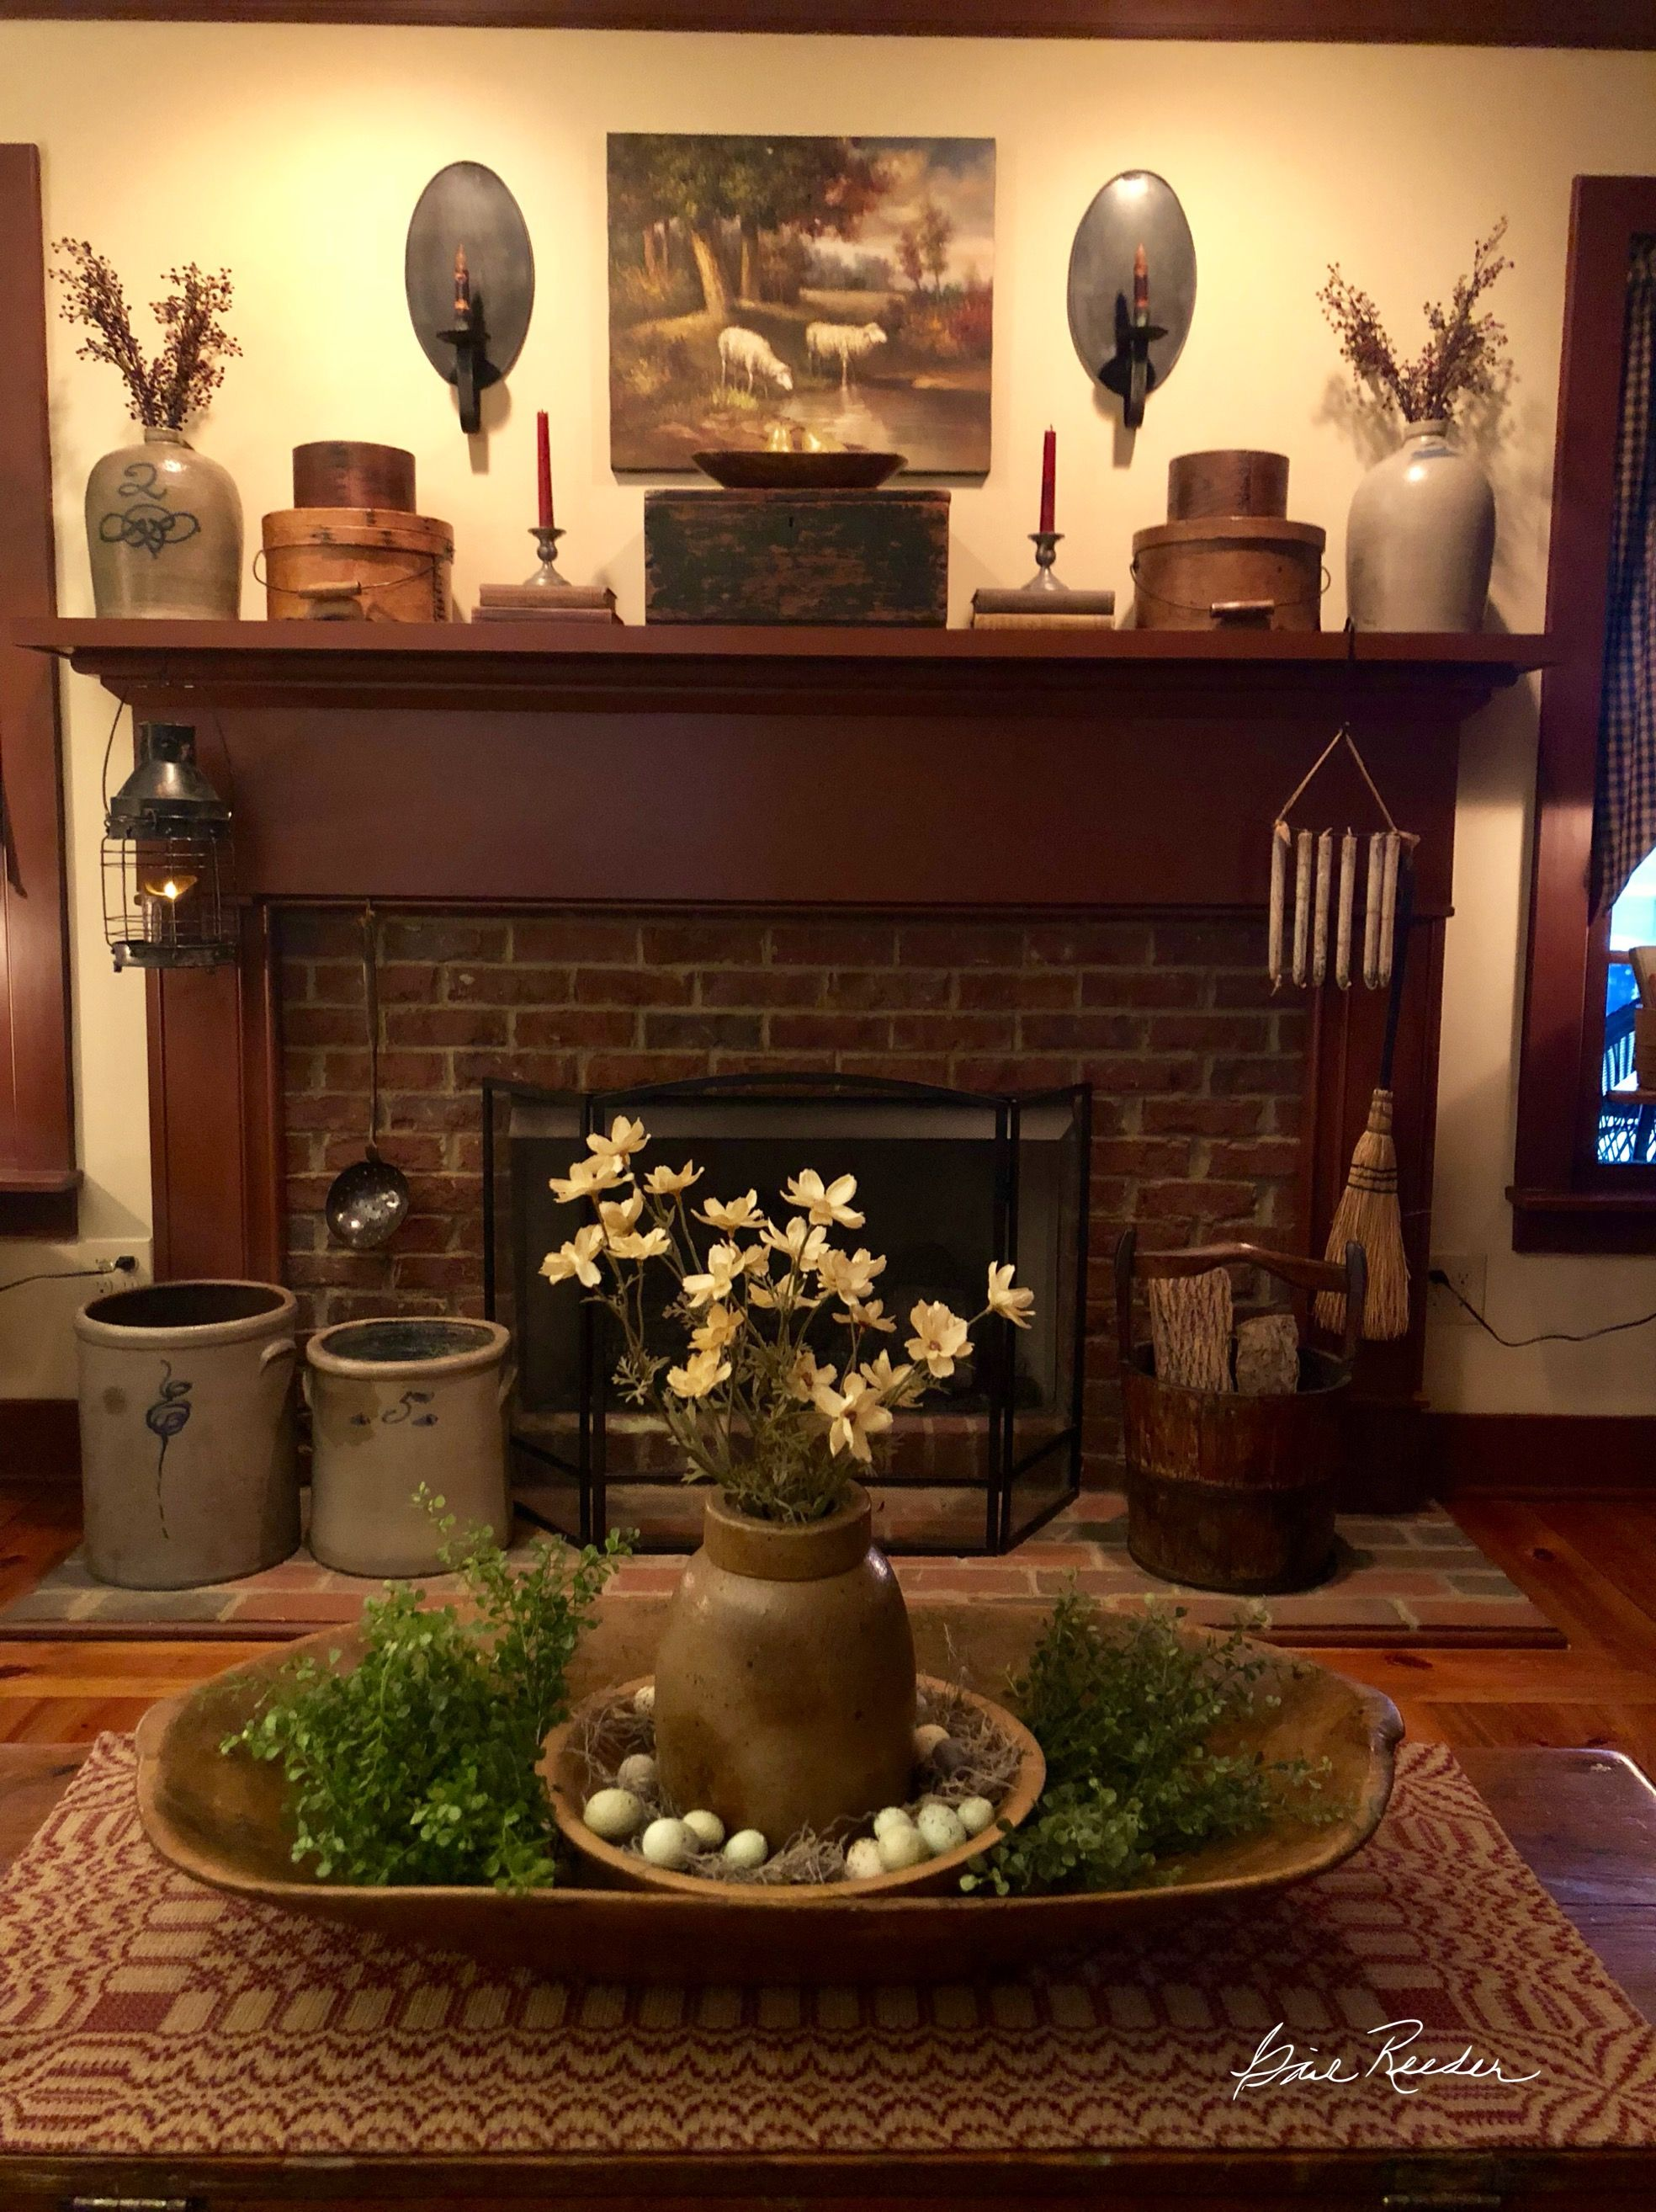 primitive mantle decor on pin by kim case on spring decor 2018 primitive decorating country primitive decorating primitive coffee table primitive decorating